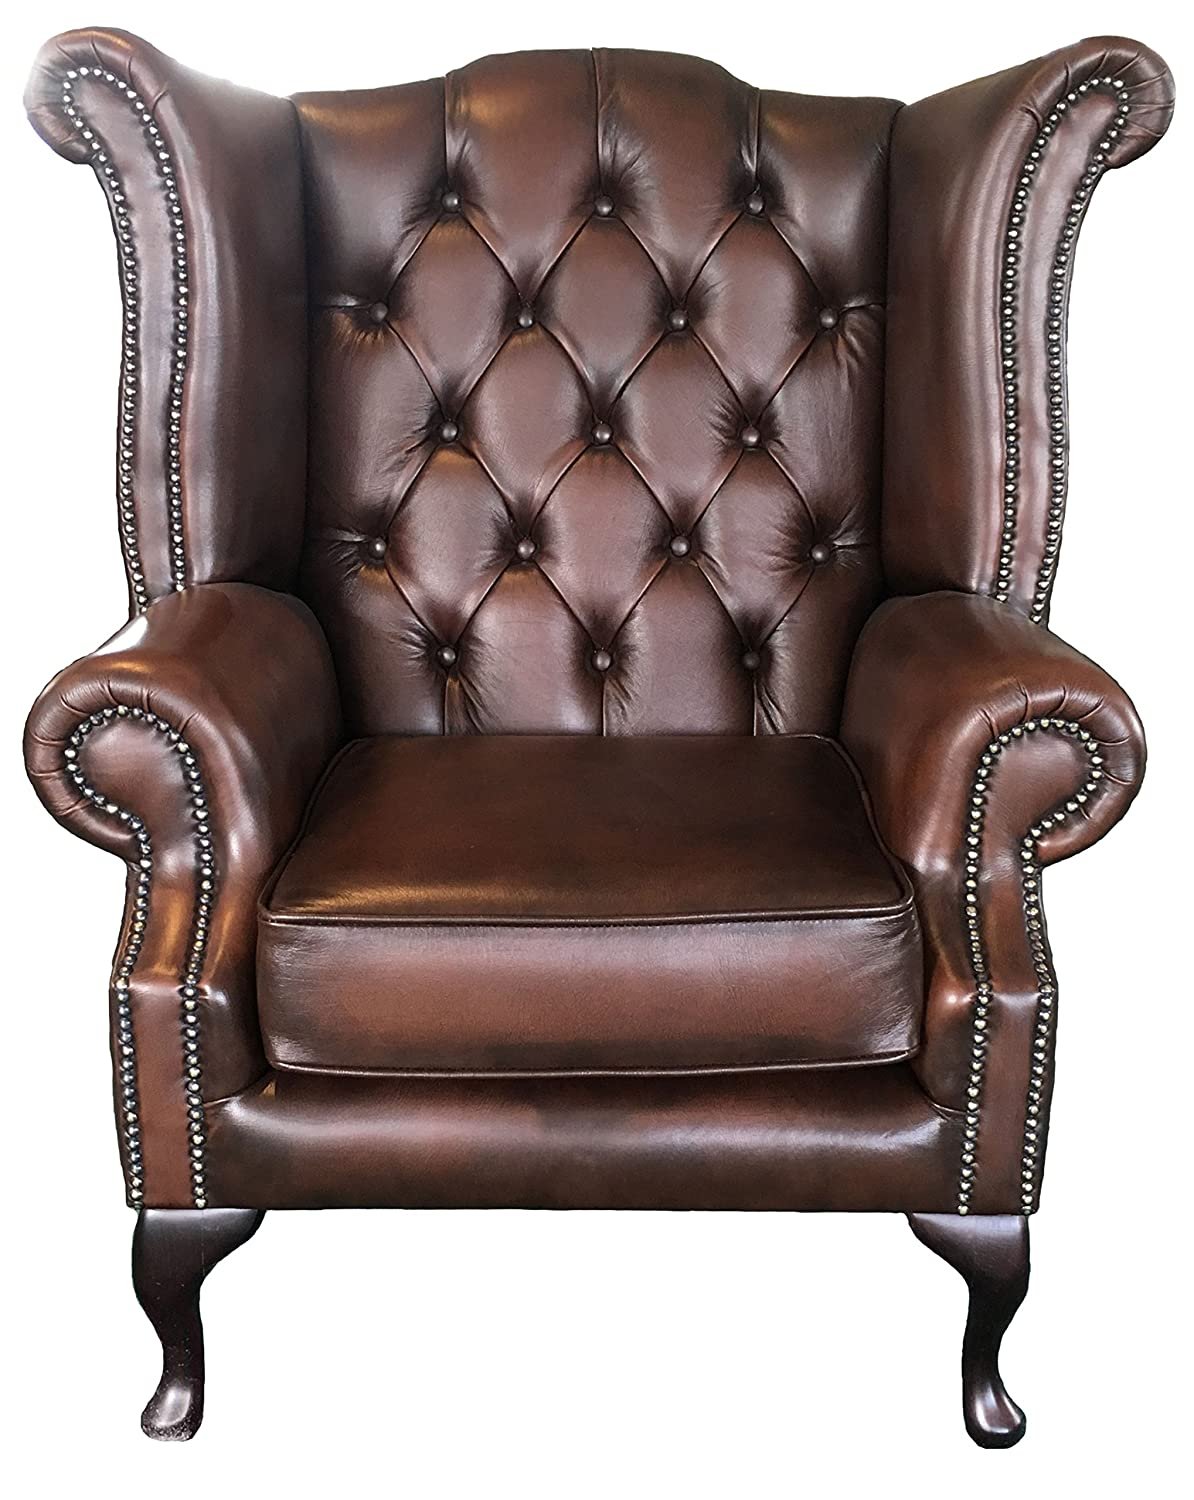 Chairs Home, Furniture & Diy The Best Luxury Comfort Handmade Chesterfield Style Leather Wingback Armchair Oxblood Red